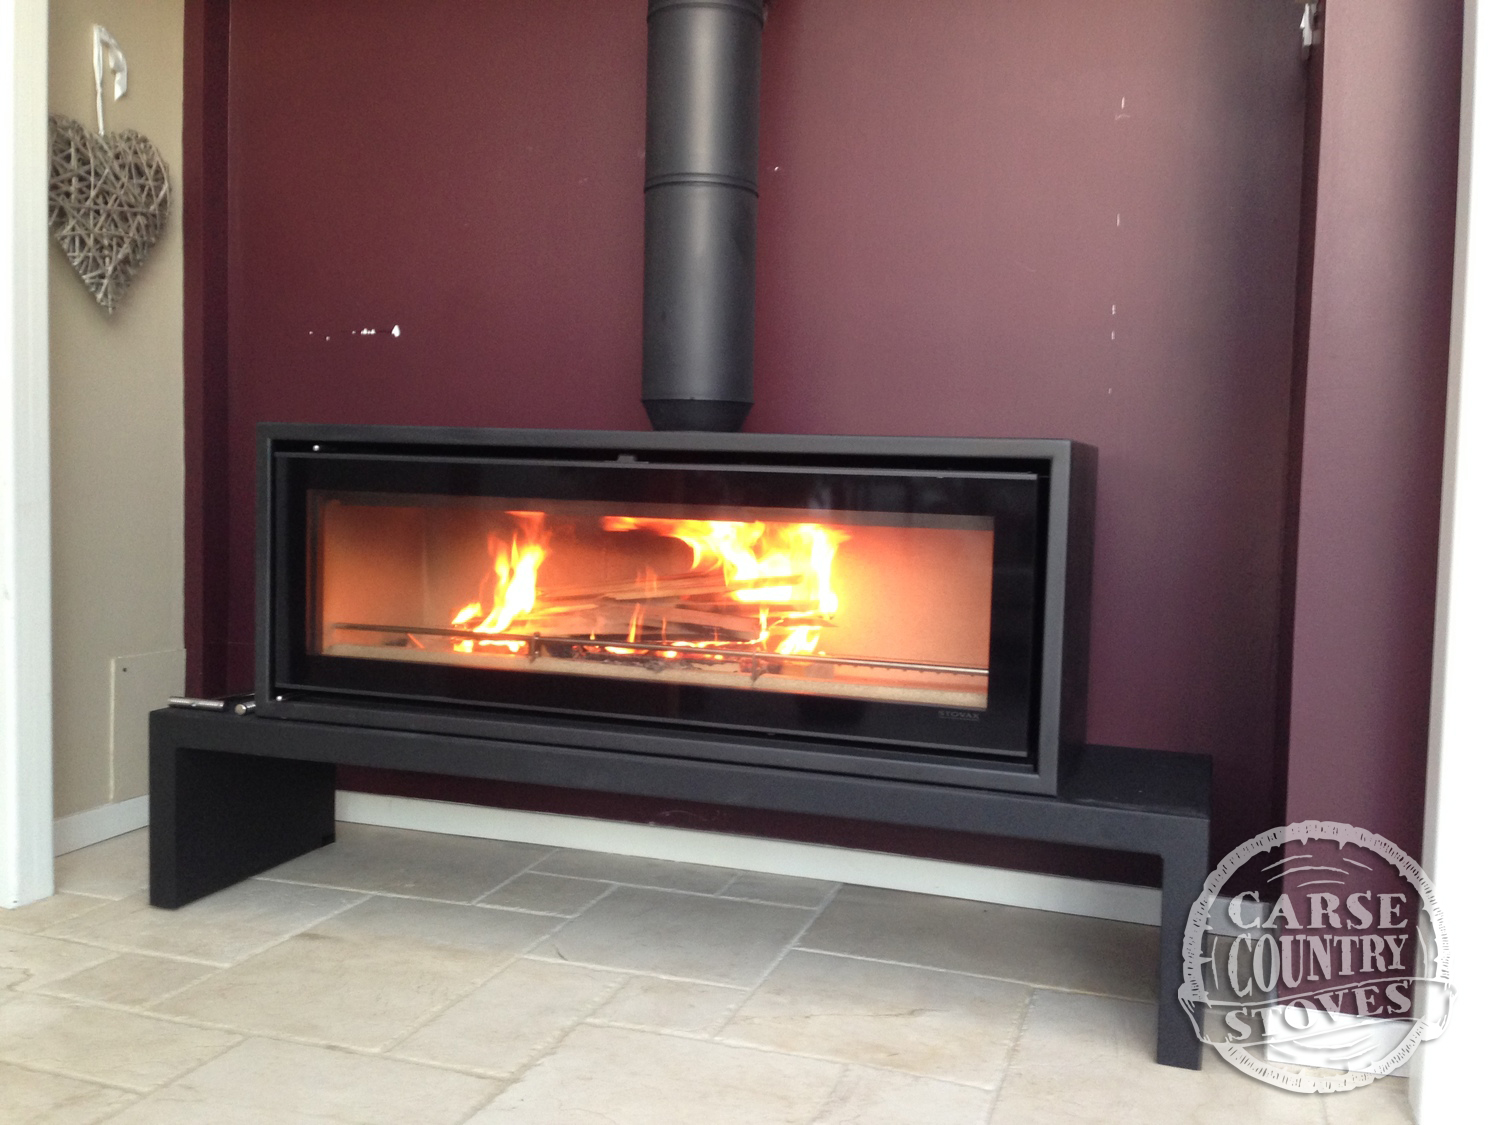 Carse Country Stoves IMG_2767.jpg